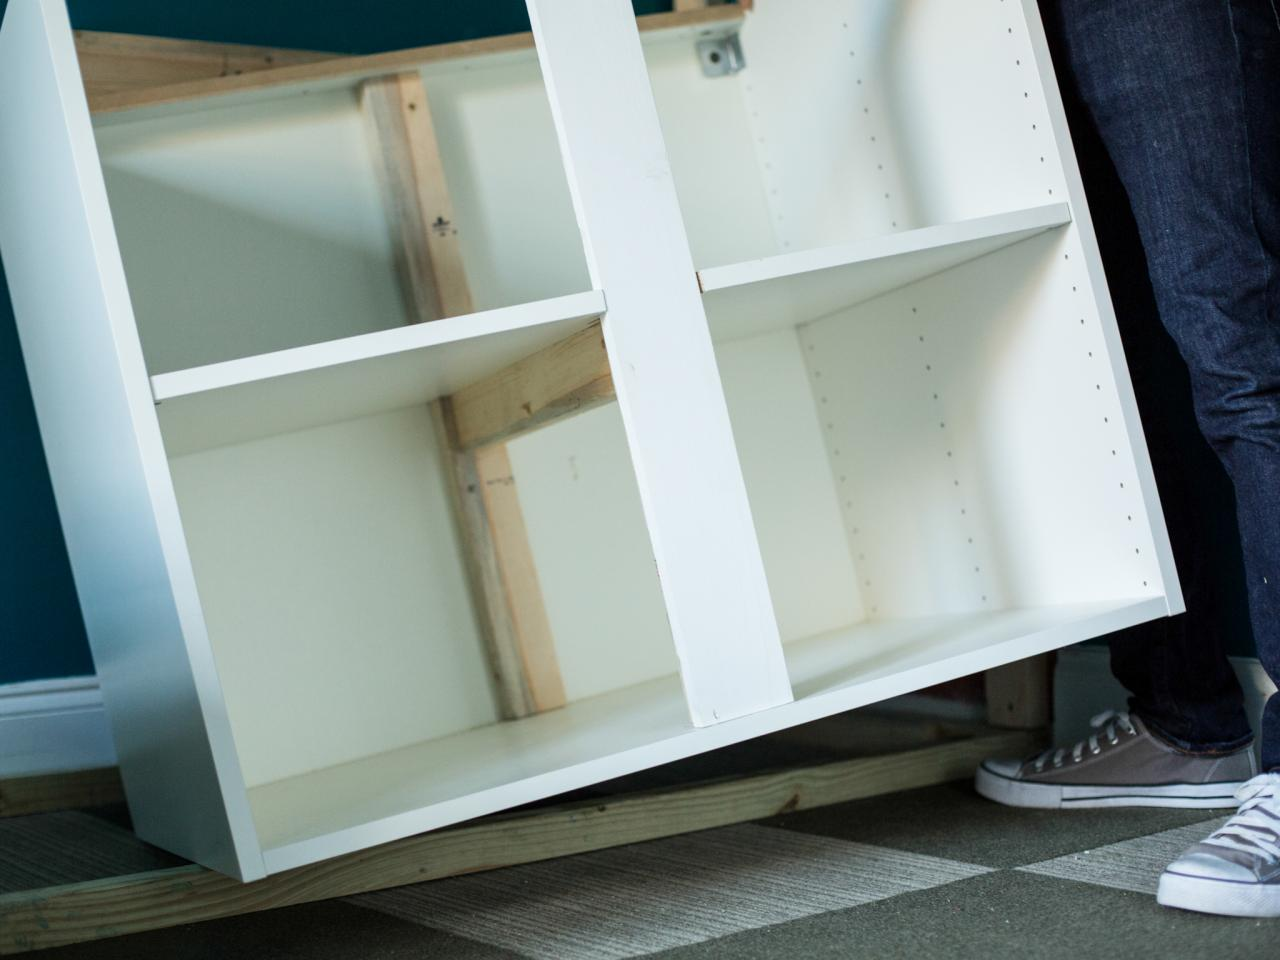 How to make bunk beds and bedroom storage with ready made - Beds attached to the wall ...